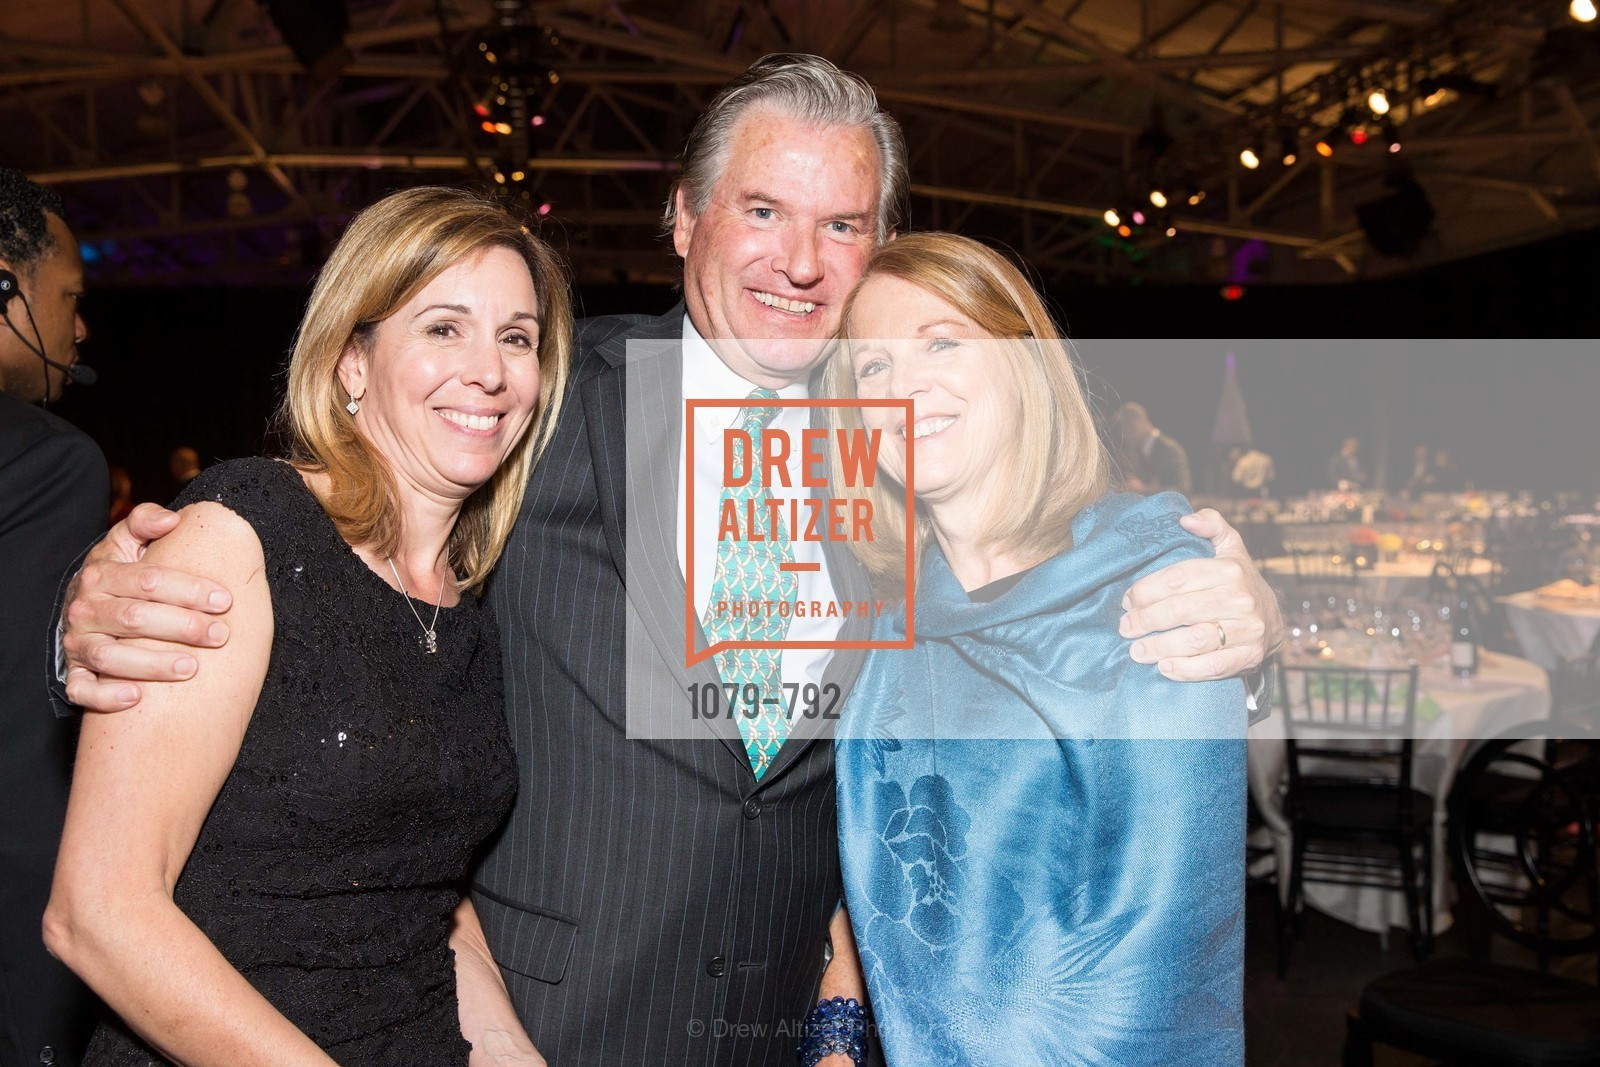 Linda Micheli, Ward Naughton, Debra Naughton, MEALS ON WHEELS OF SAN FRANCISCO'S 28th Annual Star Chefs and Vintners Gala, US, April 20th, 2015,Drew Altizer, Drew Altizer Photography, full-service event agency, private events, San Francisco photographer, photographer California